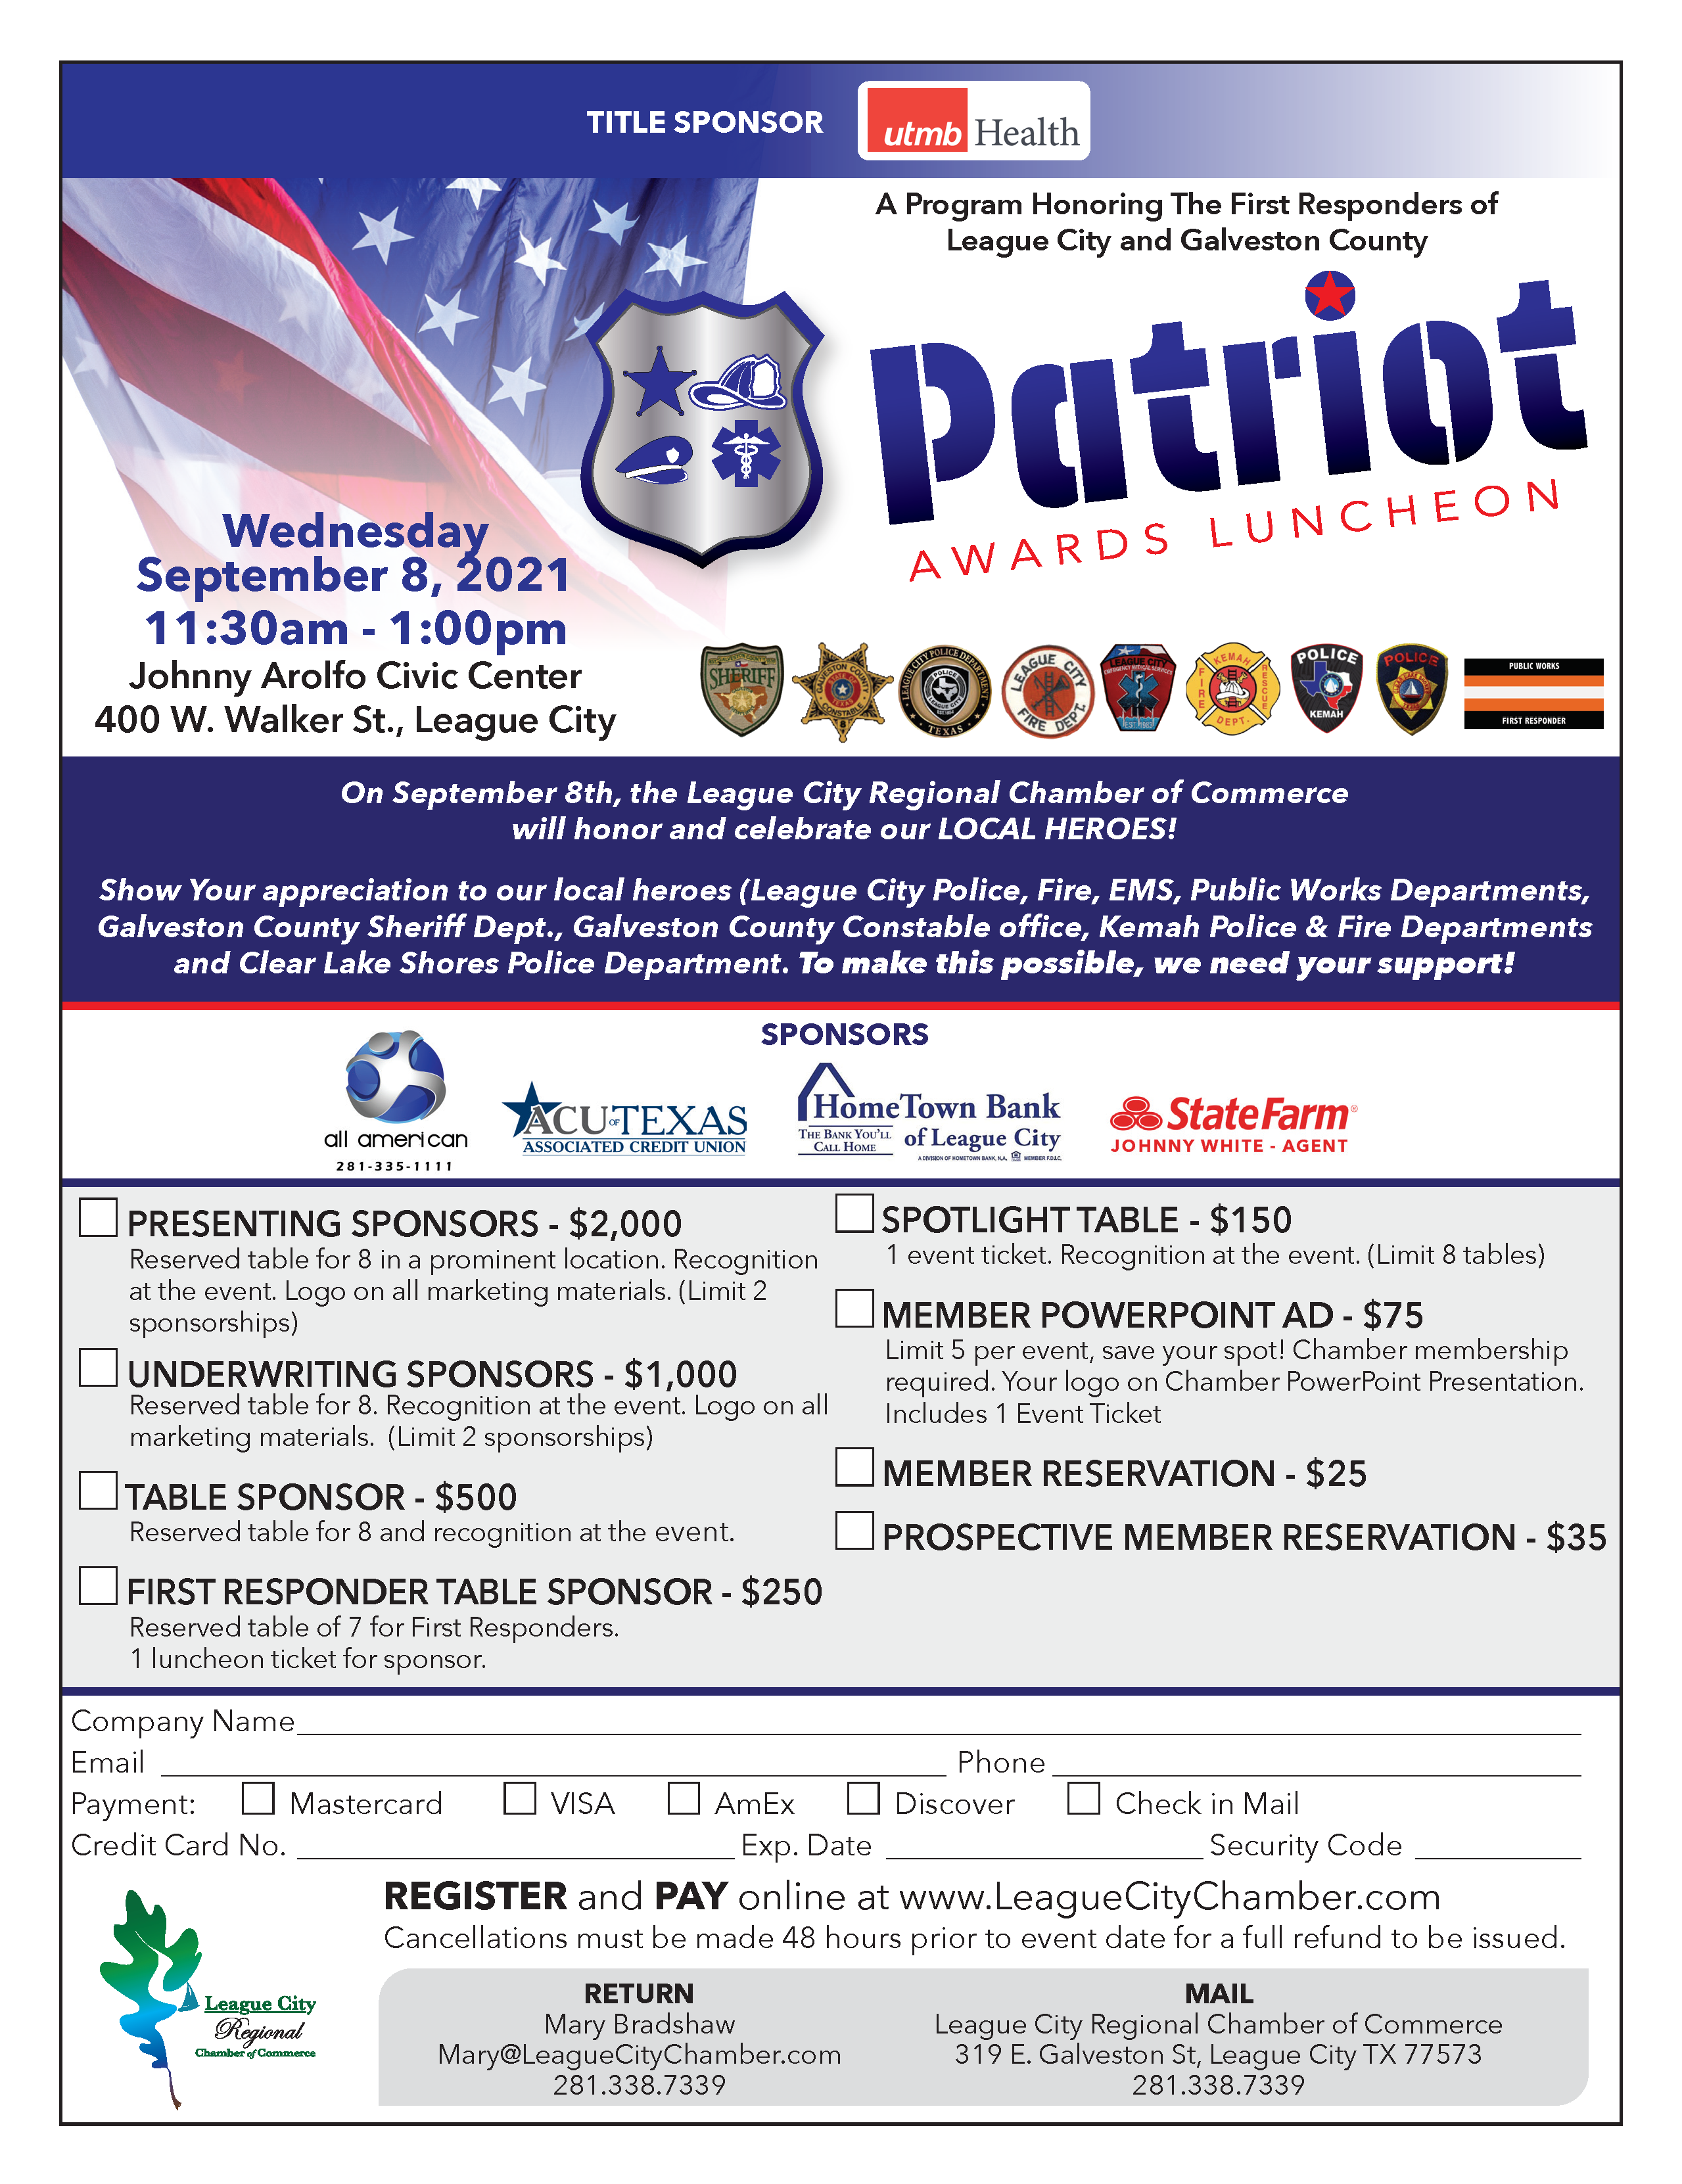 Image for Honor your first responders at the Patriot Awards Luncheon!